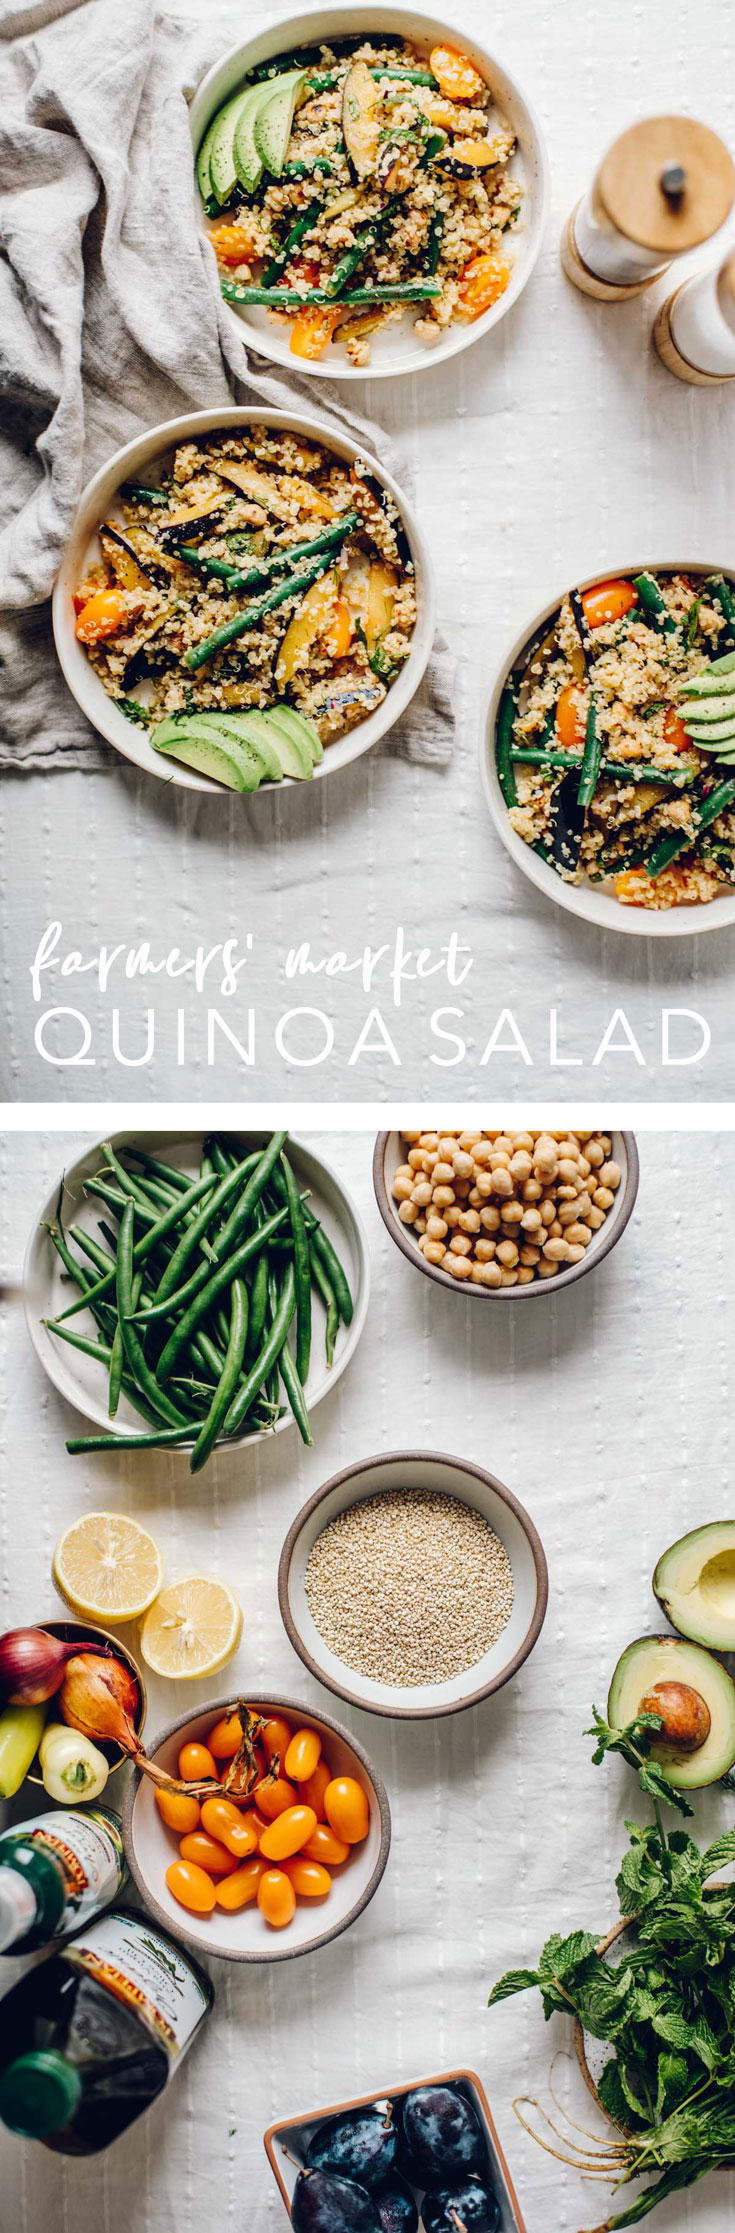 Learn how to cook intuitively by making this totally customizable Farmers' Market Quinoa Salad. Eat clean and support local farmers, all in one dish! #farmersmarket #quinoa #quinoasalad #glutenfree #dairyfree | Brewing Happiness